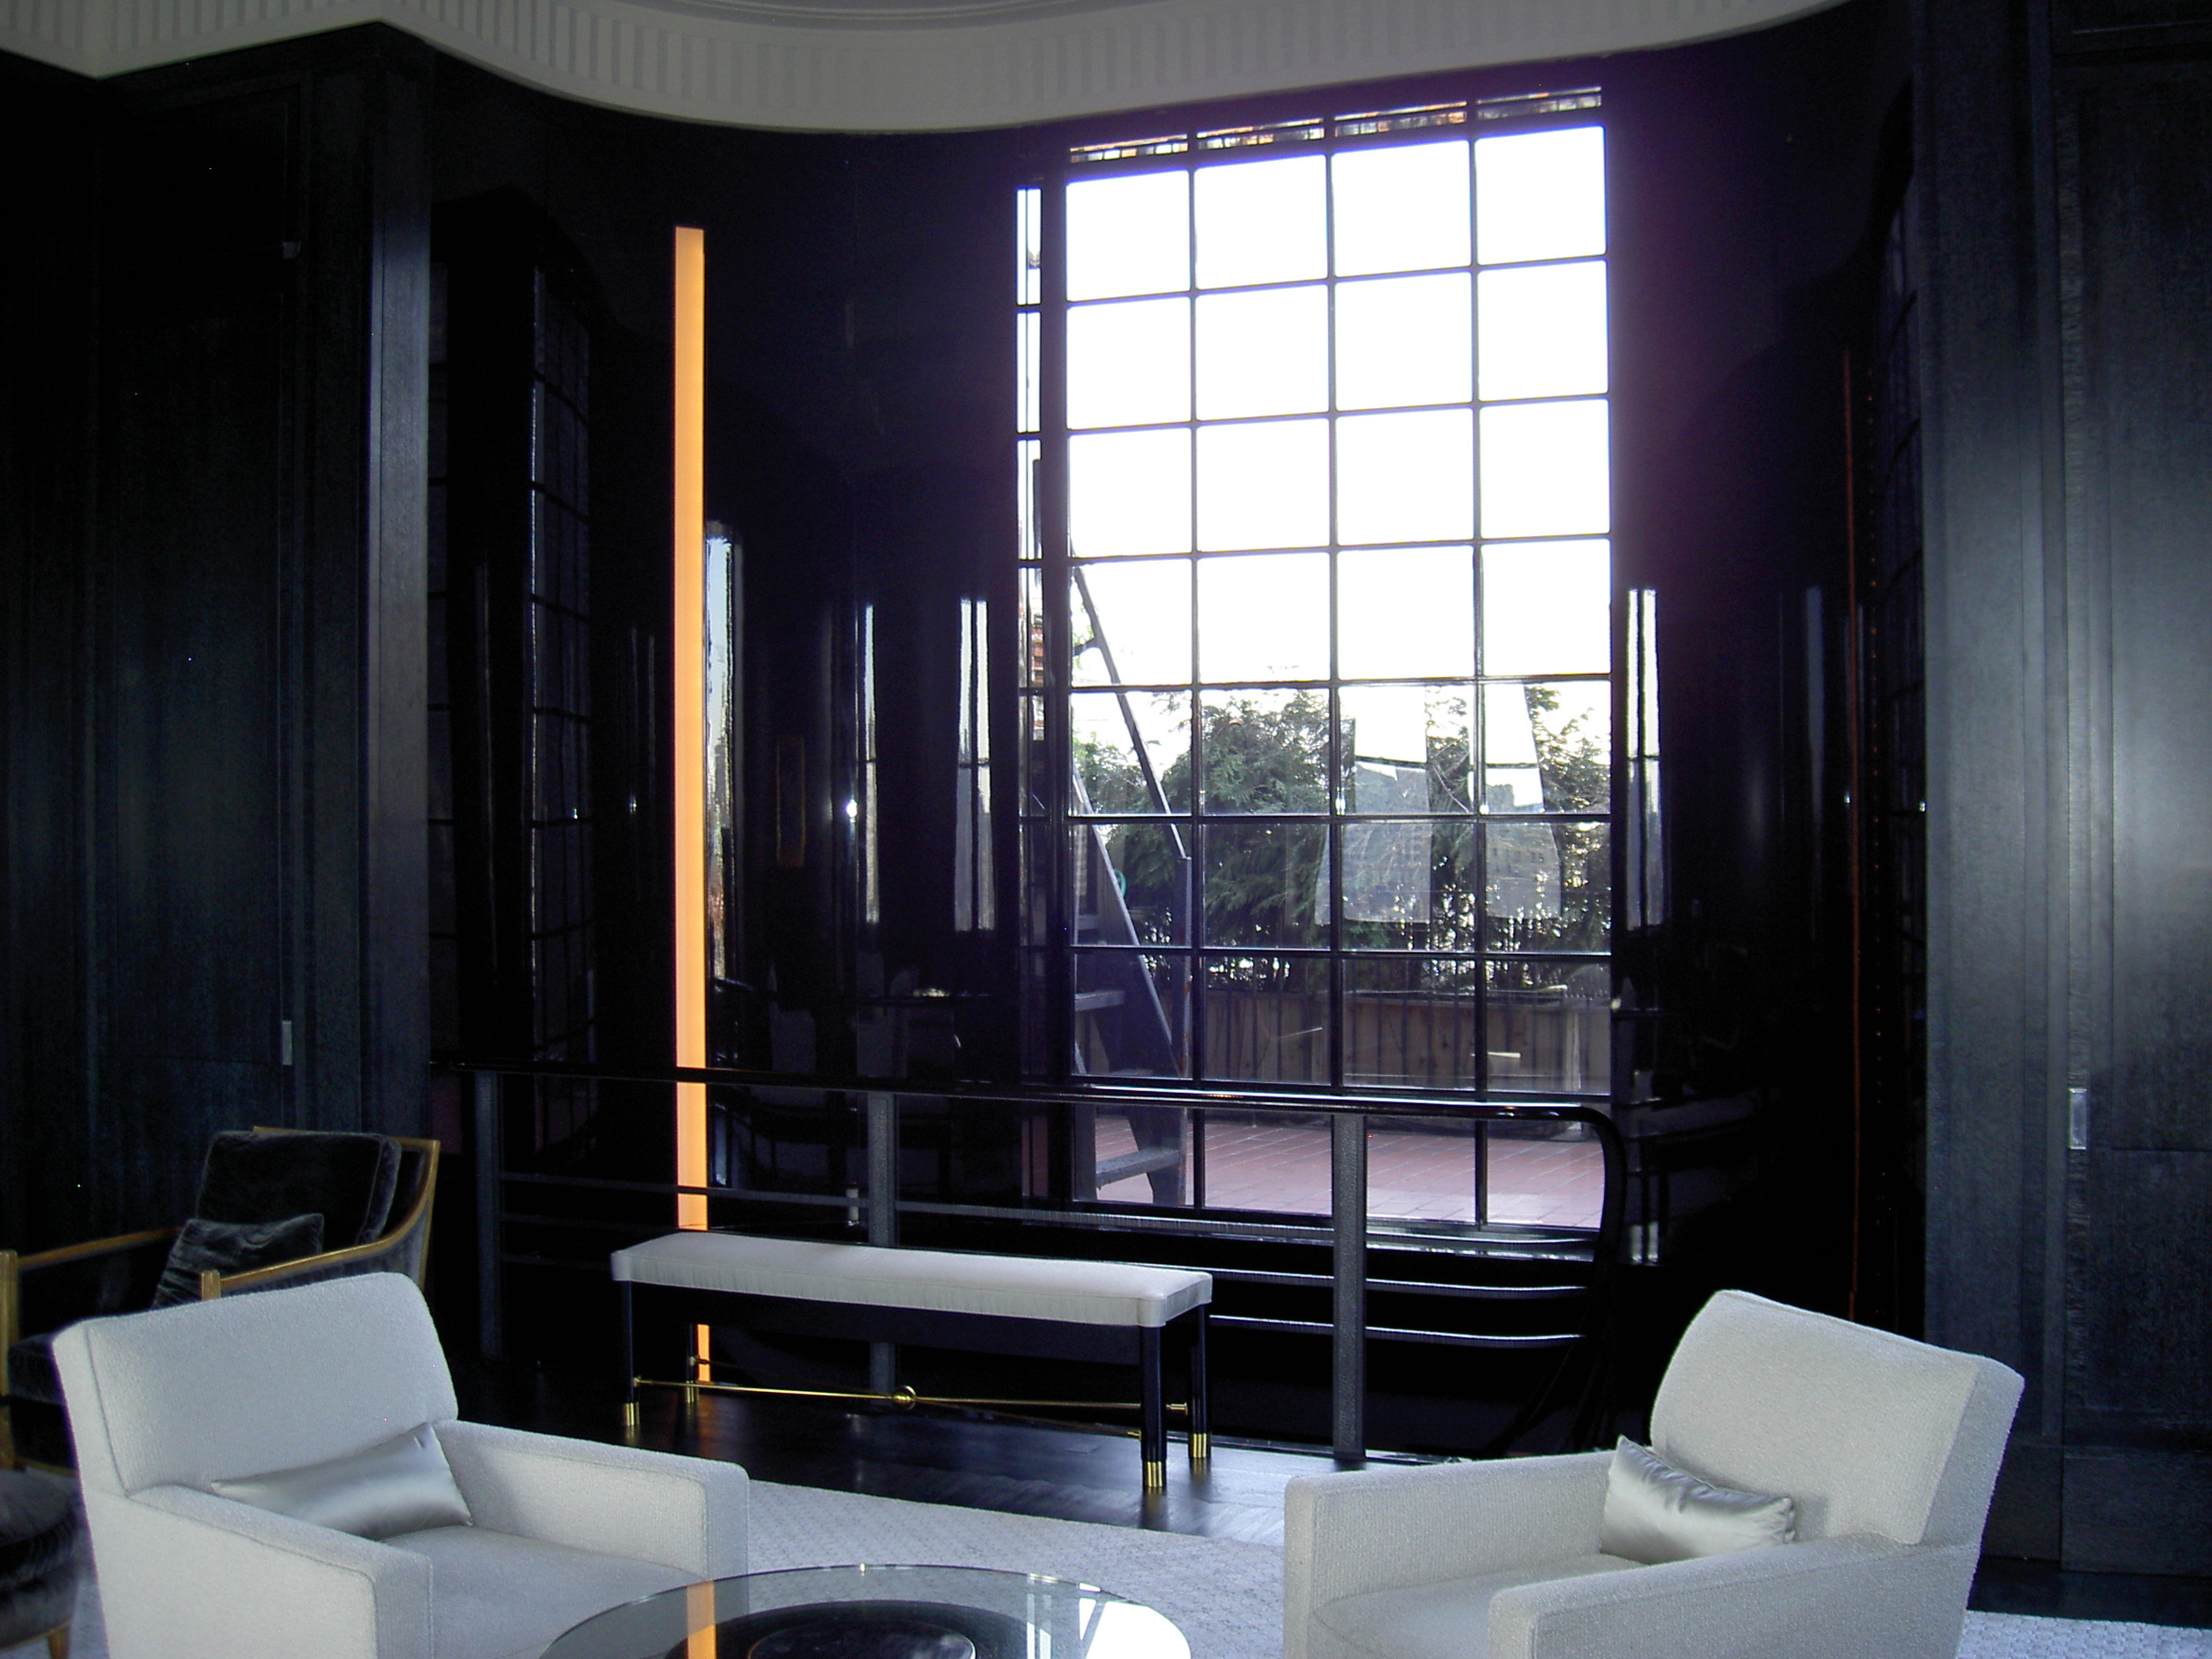 New picture window view to the Empire State Building,cerused oak and high-gloss black lacquer wall paneling